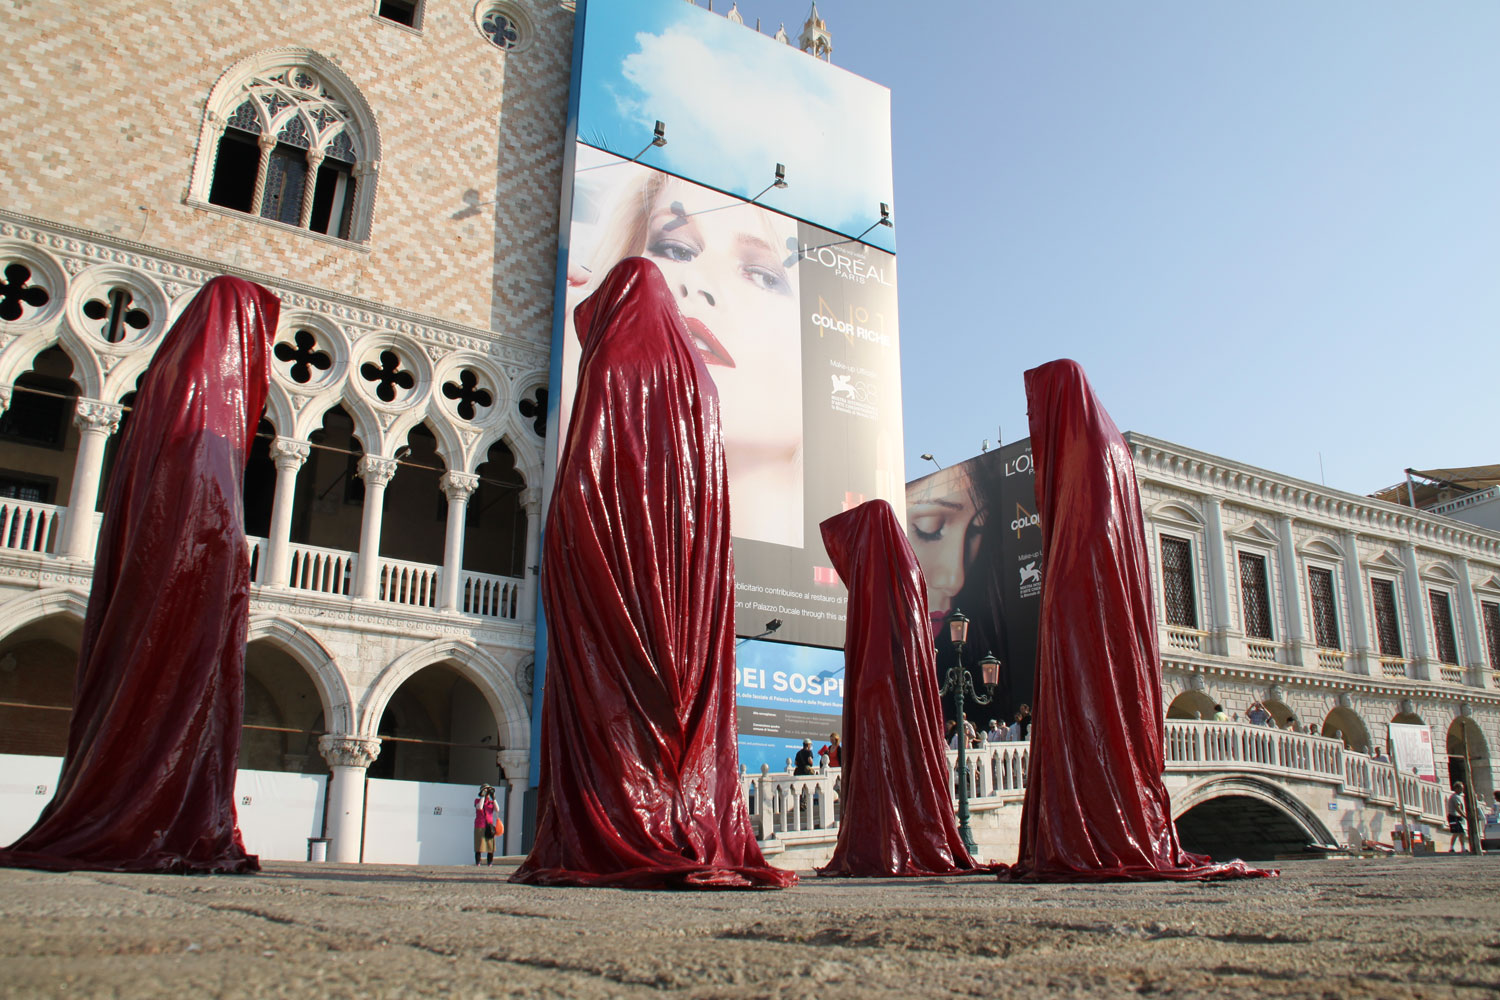 public biennale de arte venice international world light art arts design exhibition sculpture guardians of time manfred kielnhofer 4339